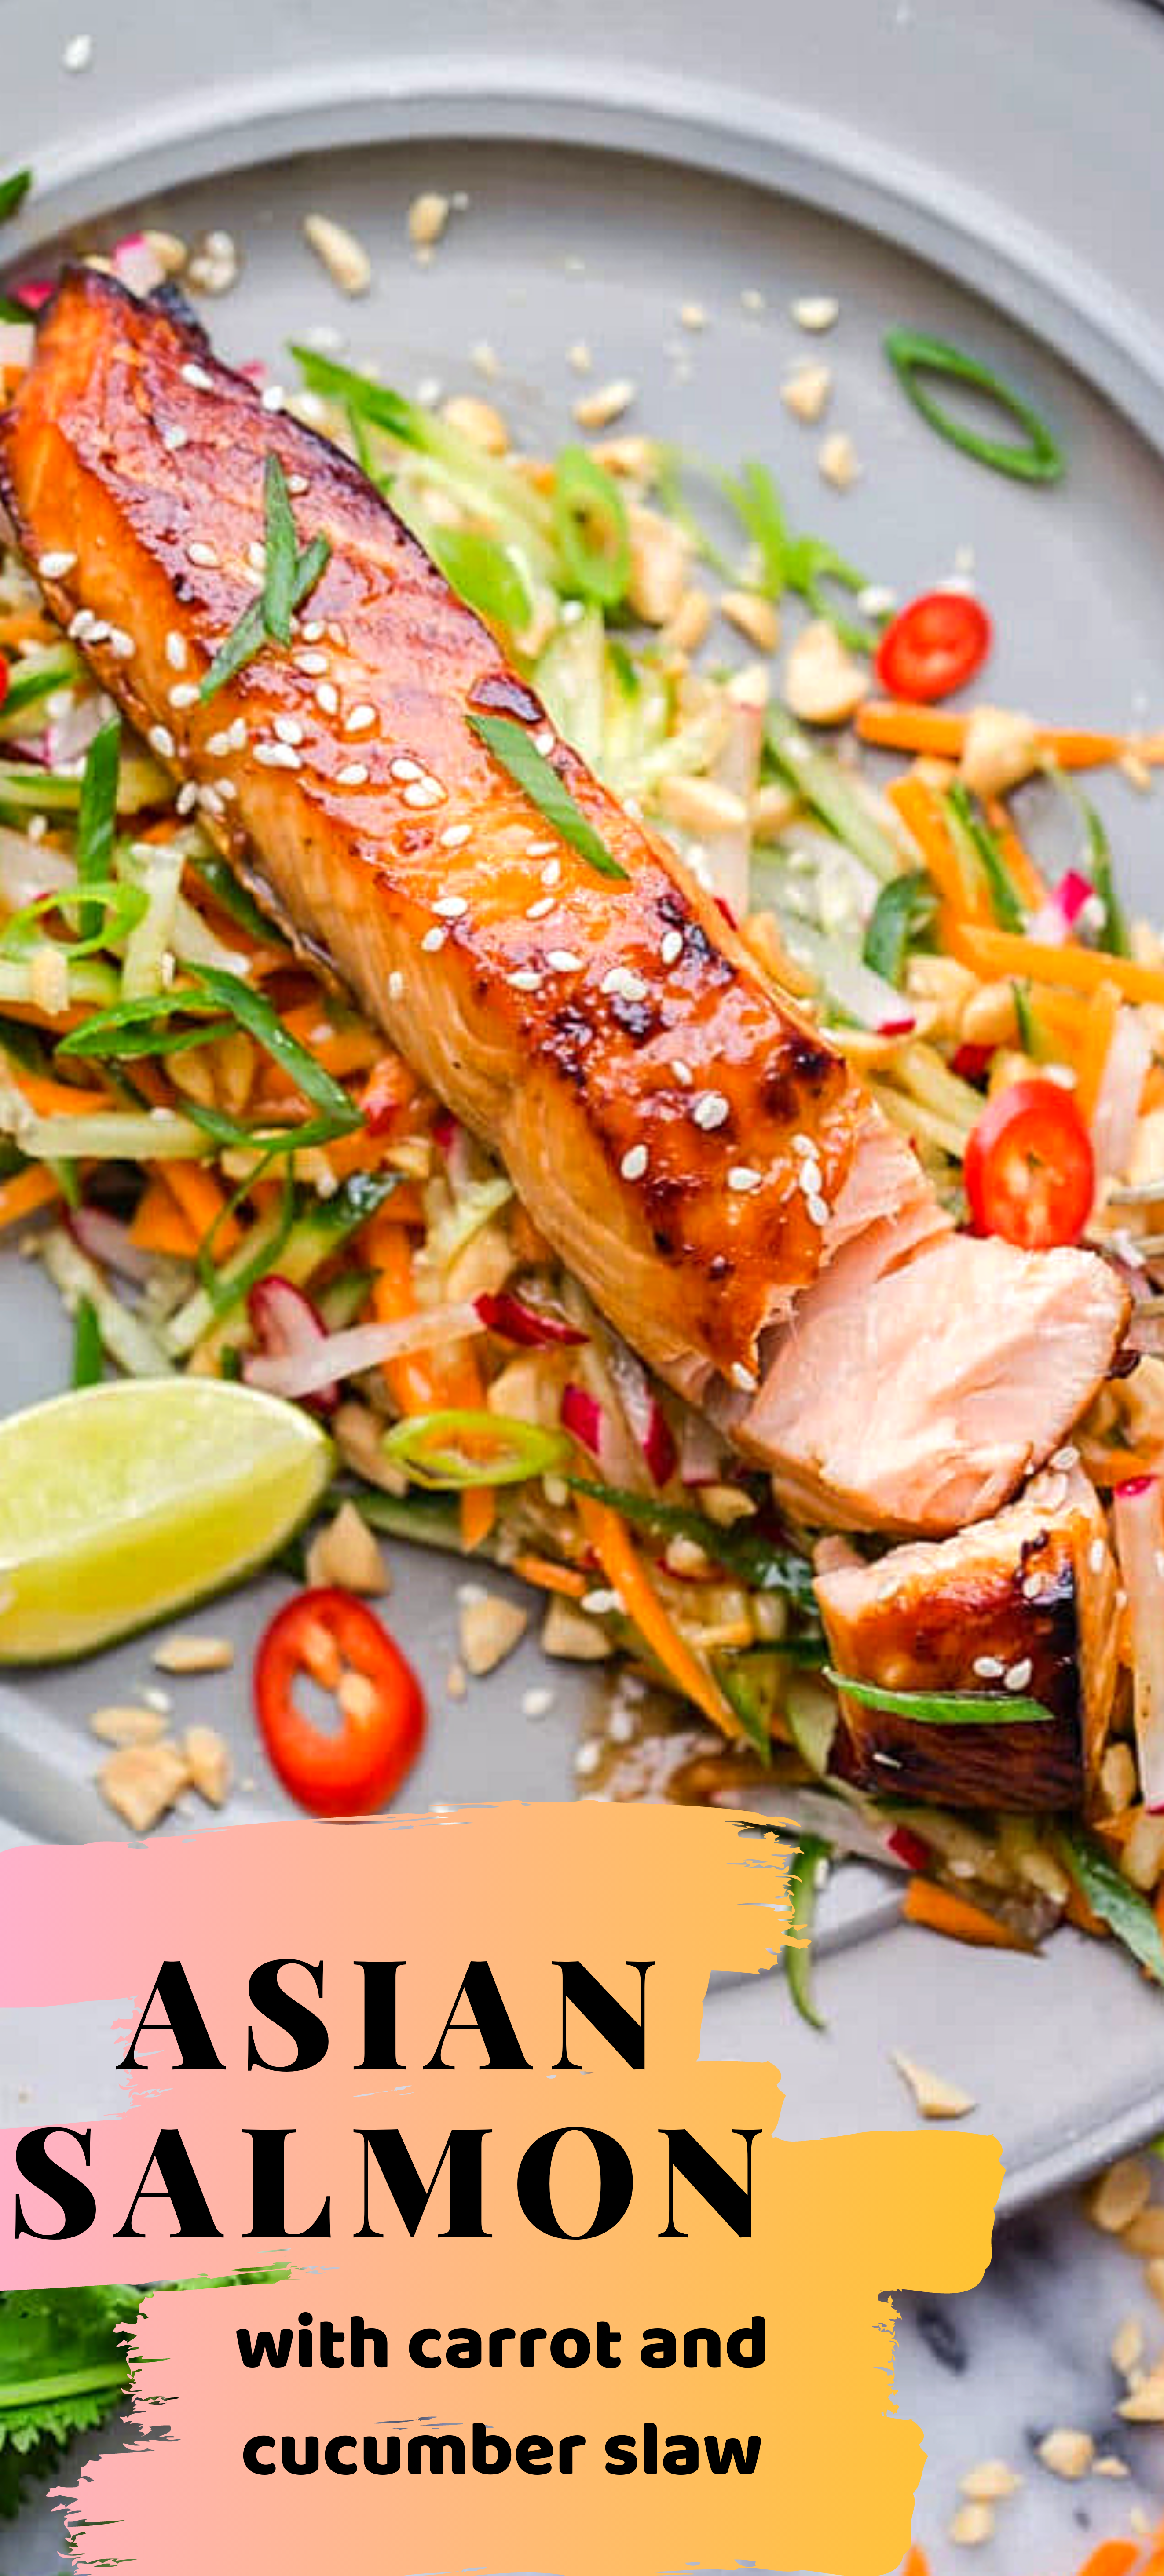 Asian Salmon with Carrot and Cucumber Slaw #salmonrecipes